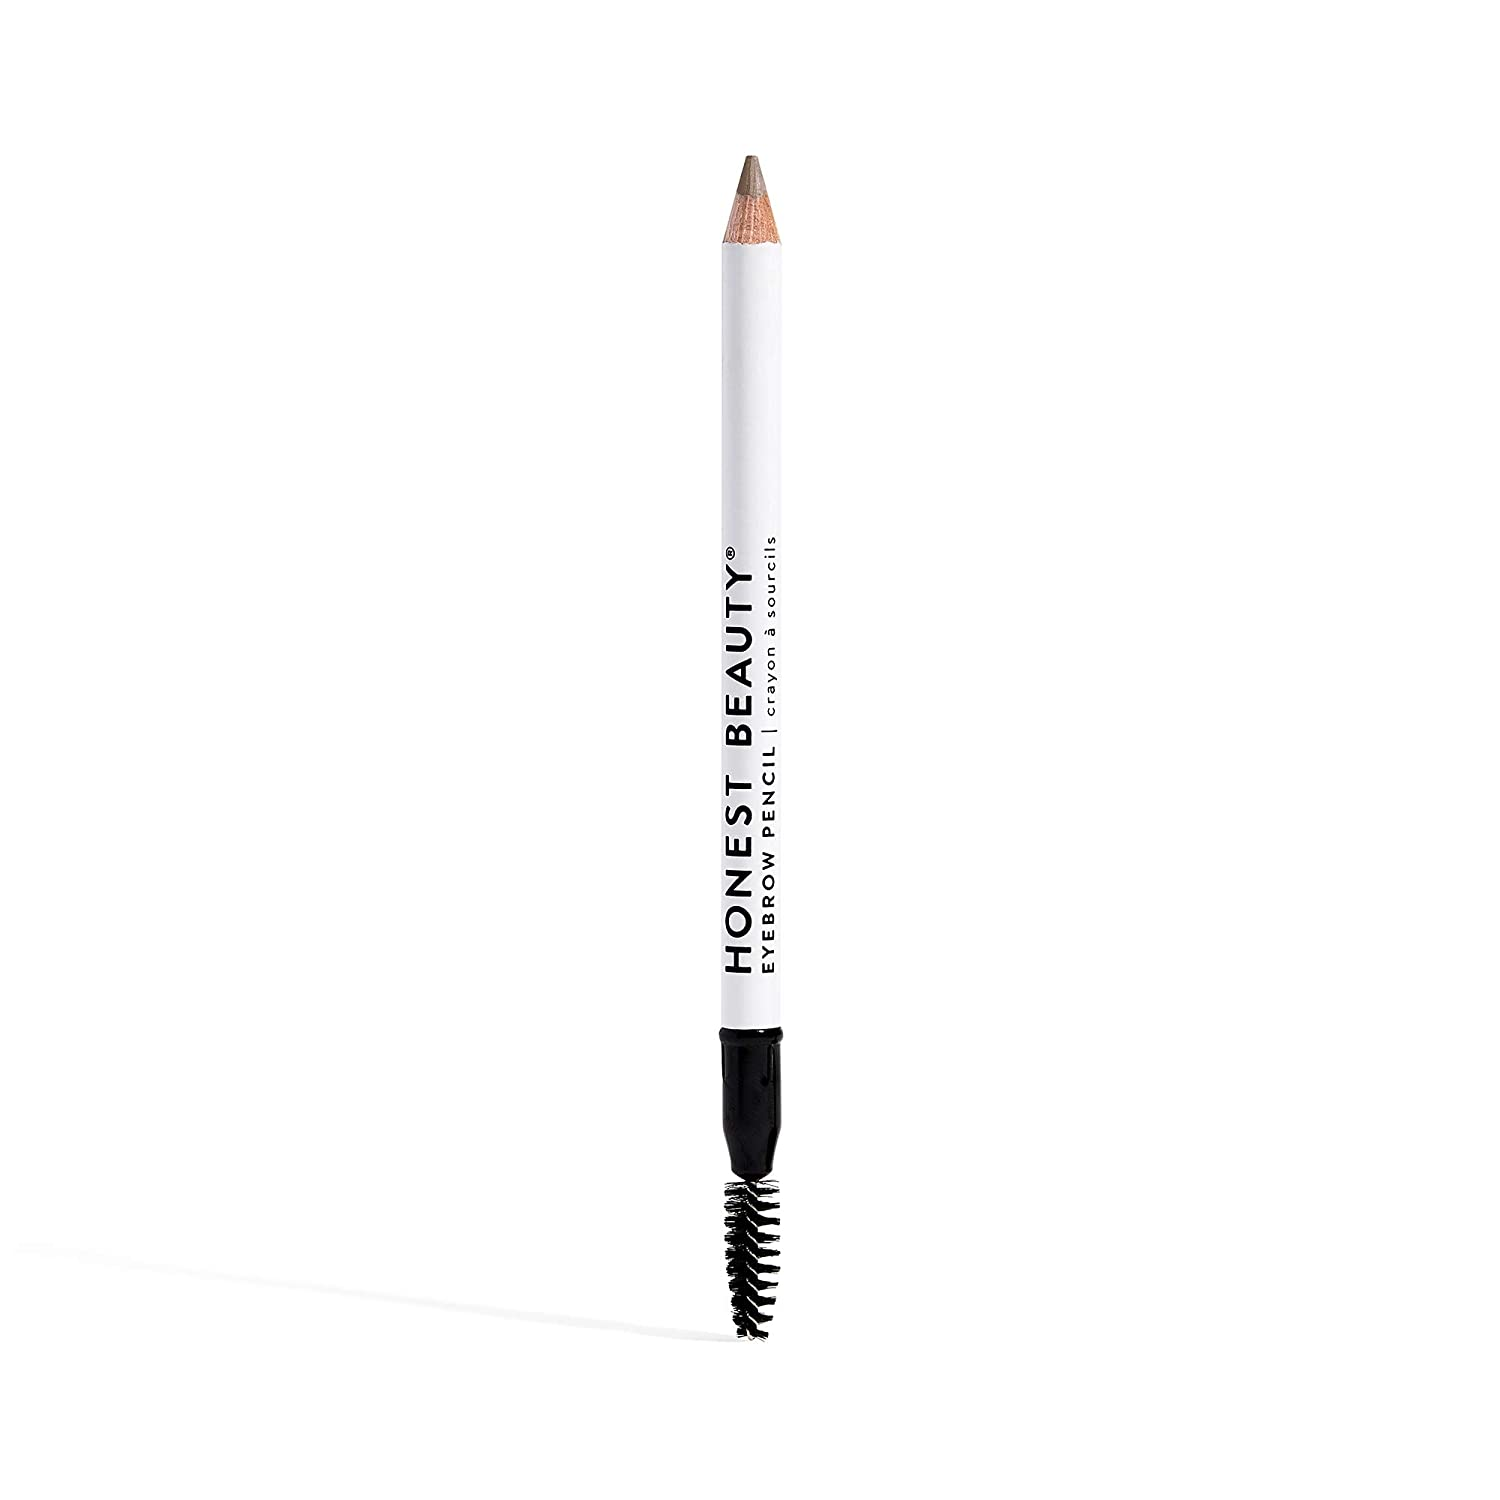 Honest Beauty Eyebrow Pencil with Spoolie, Brown | Buildable & Blendable with Jojoba Seed Oil | Paraben Free, Dermatologist Tested & Cruelty Free | 0.039 oz.